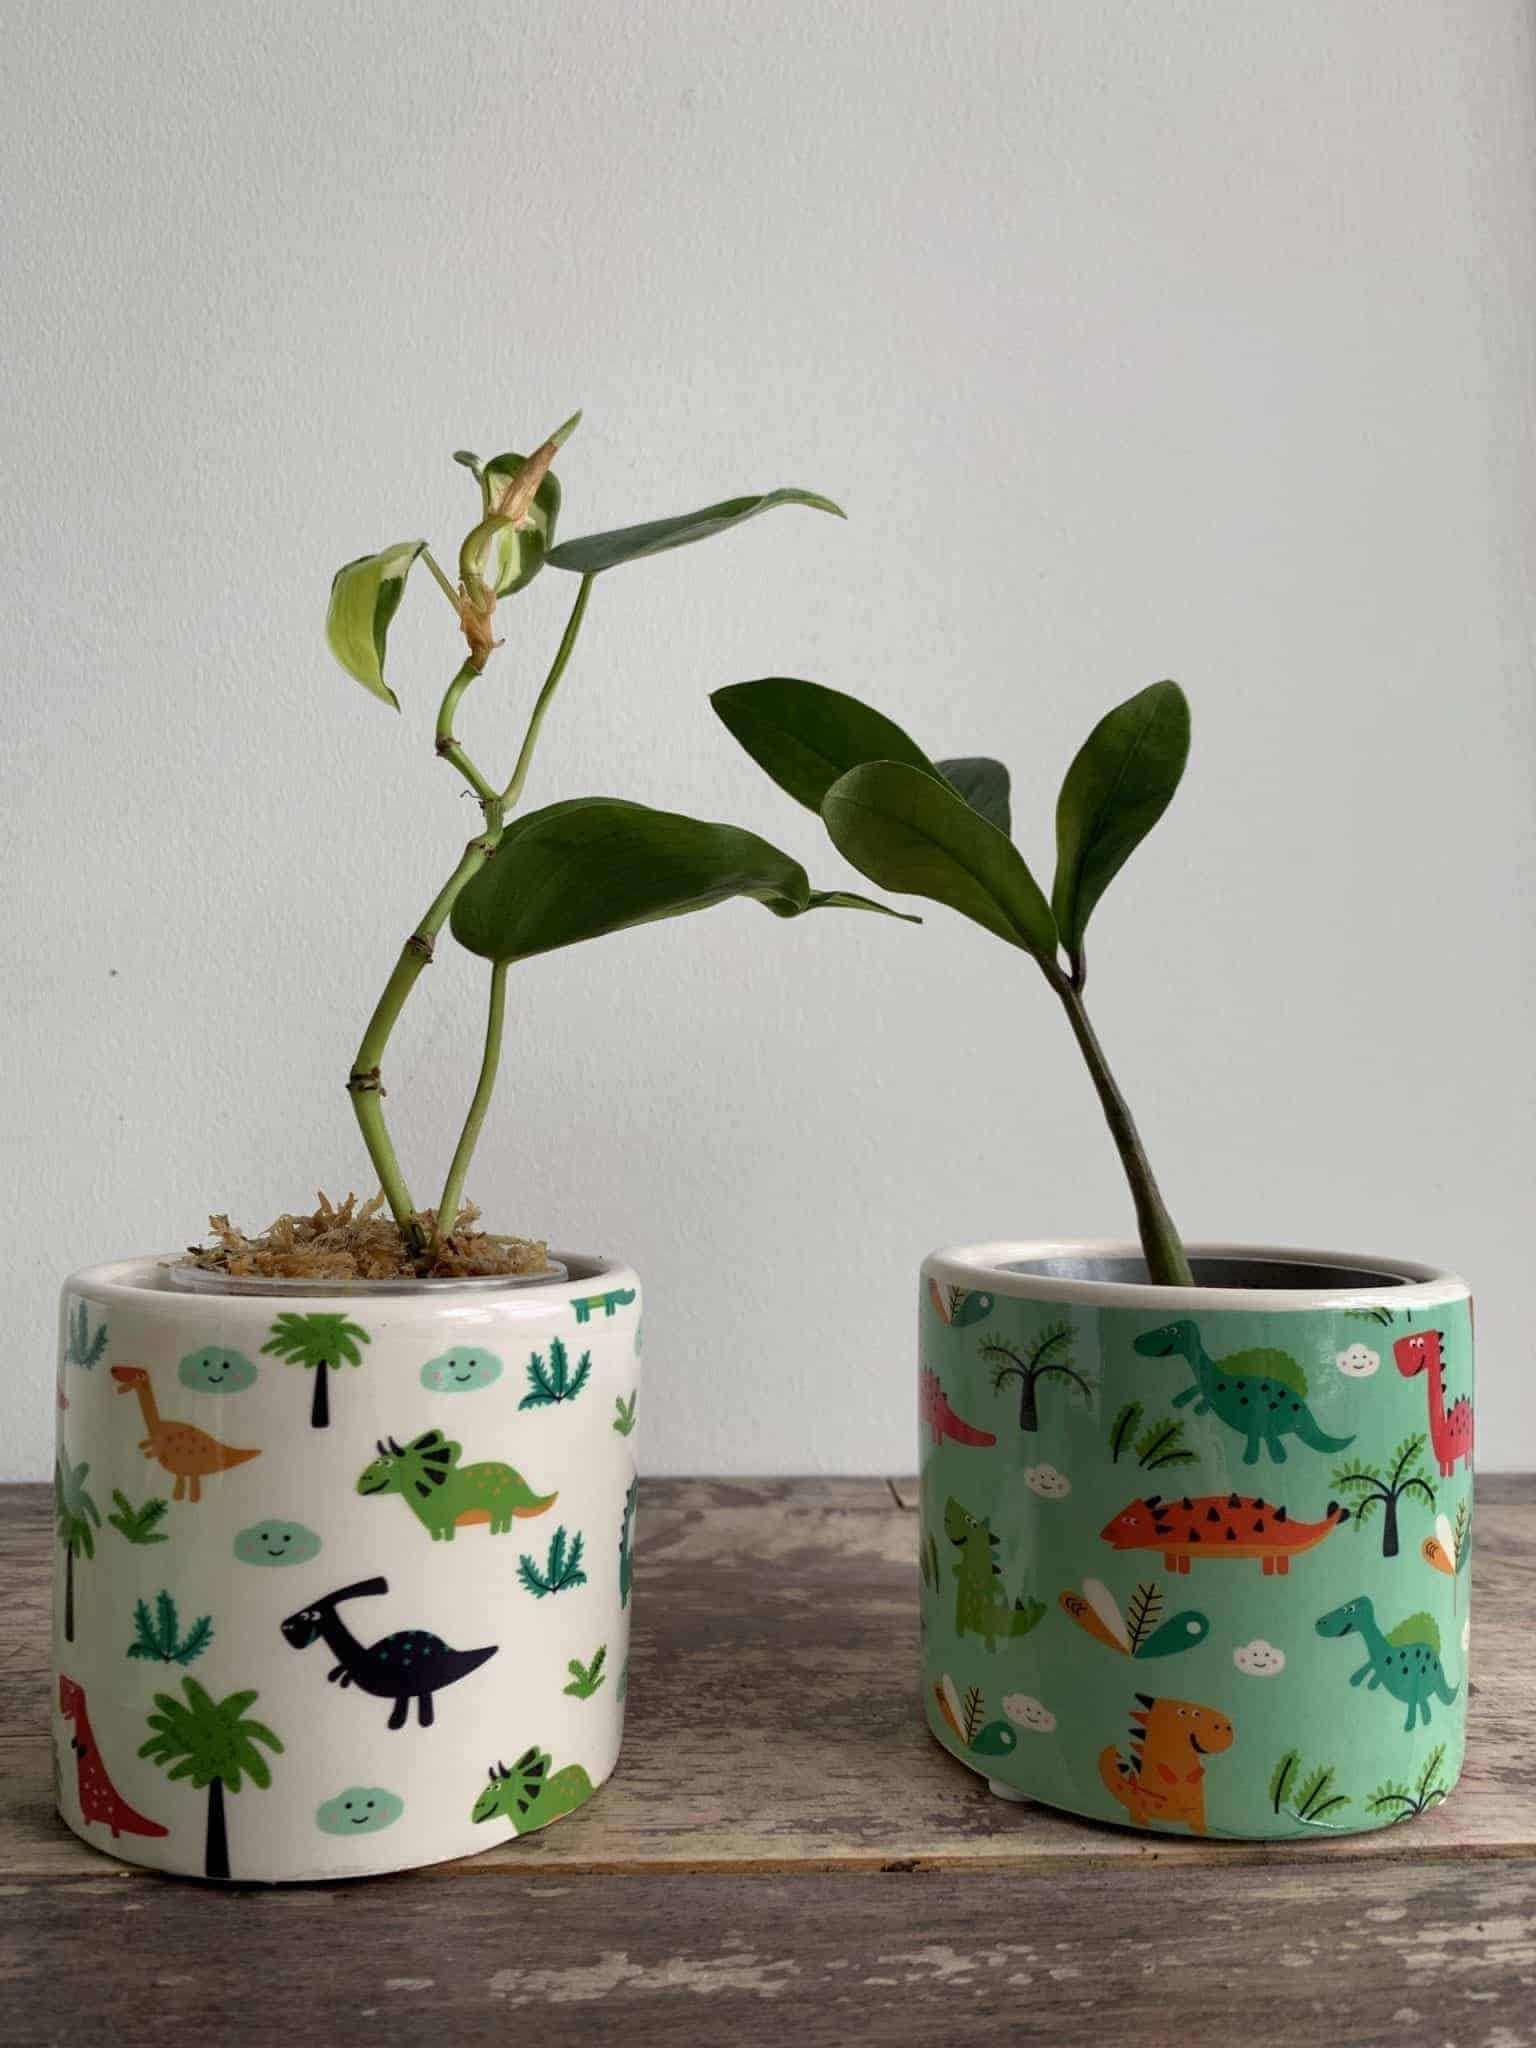 Dino Planter for up to 7cm pots